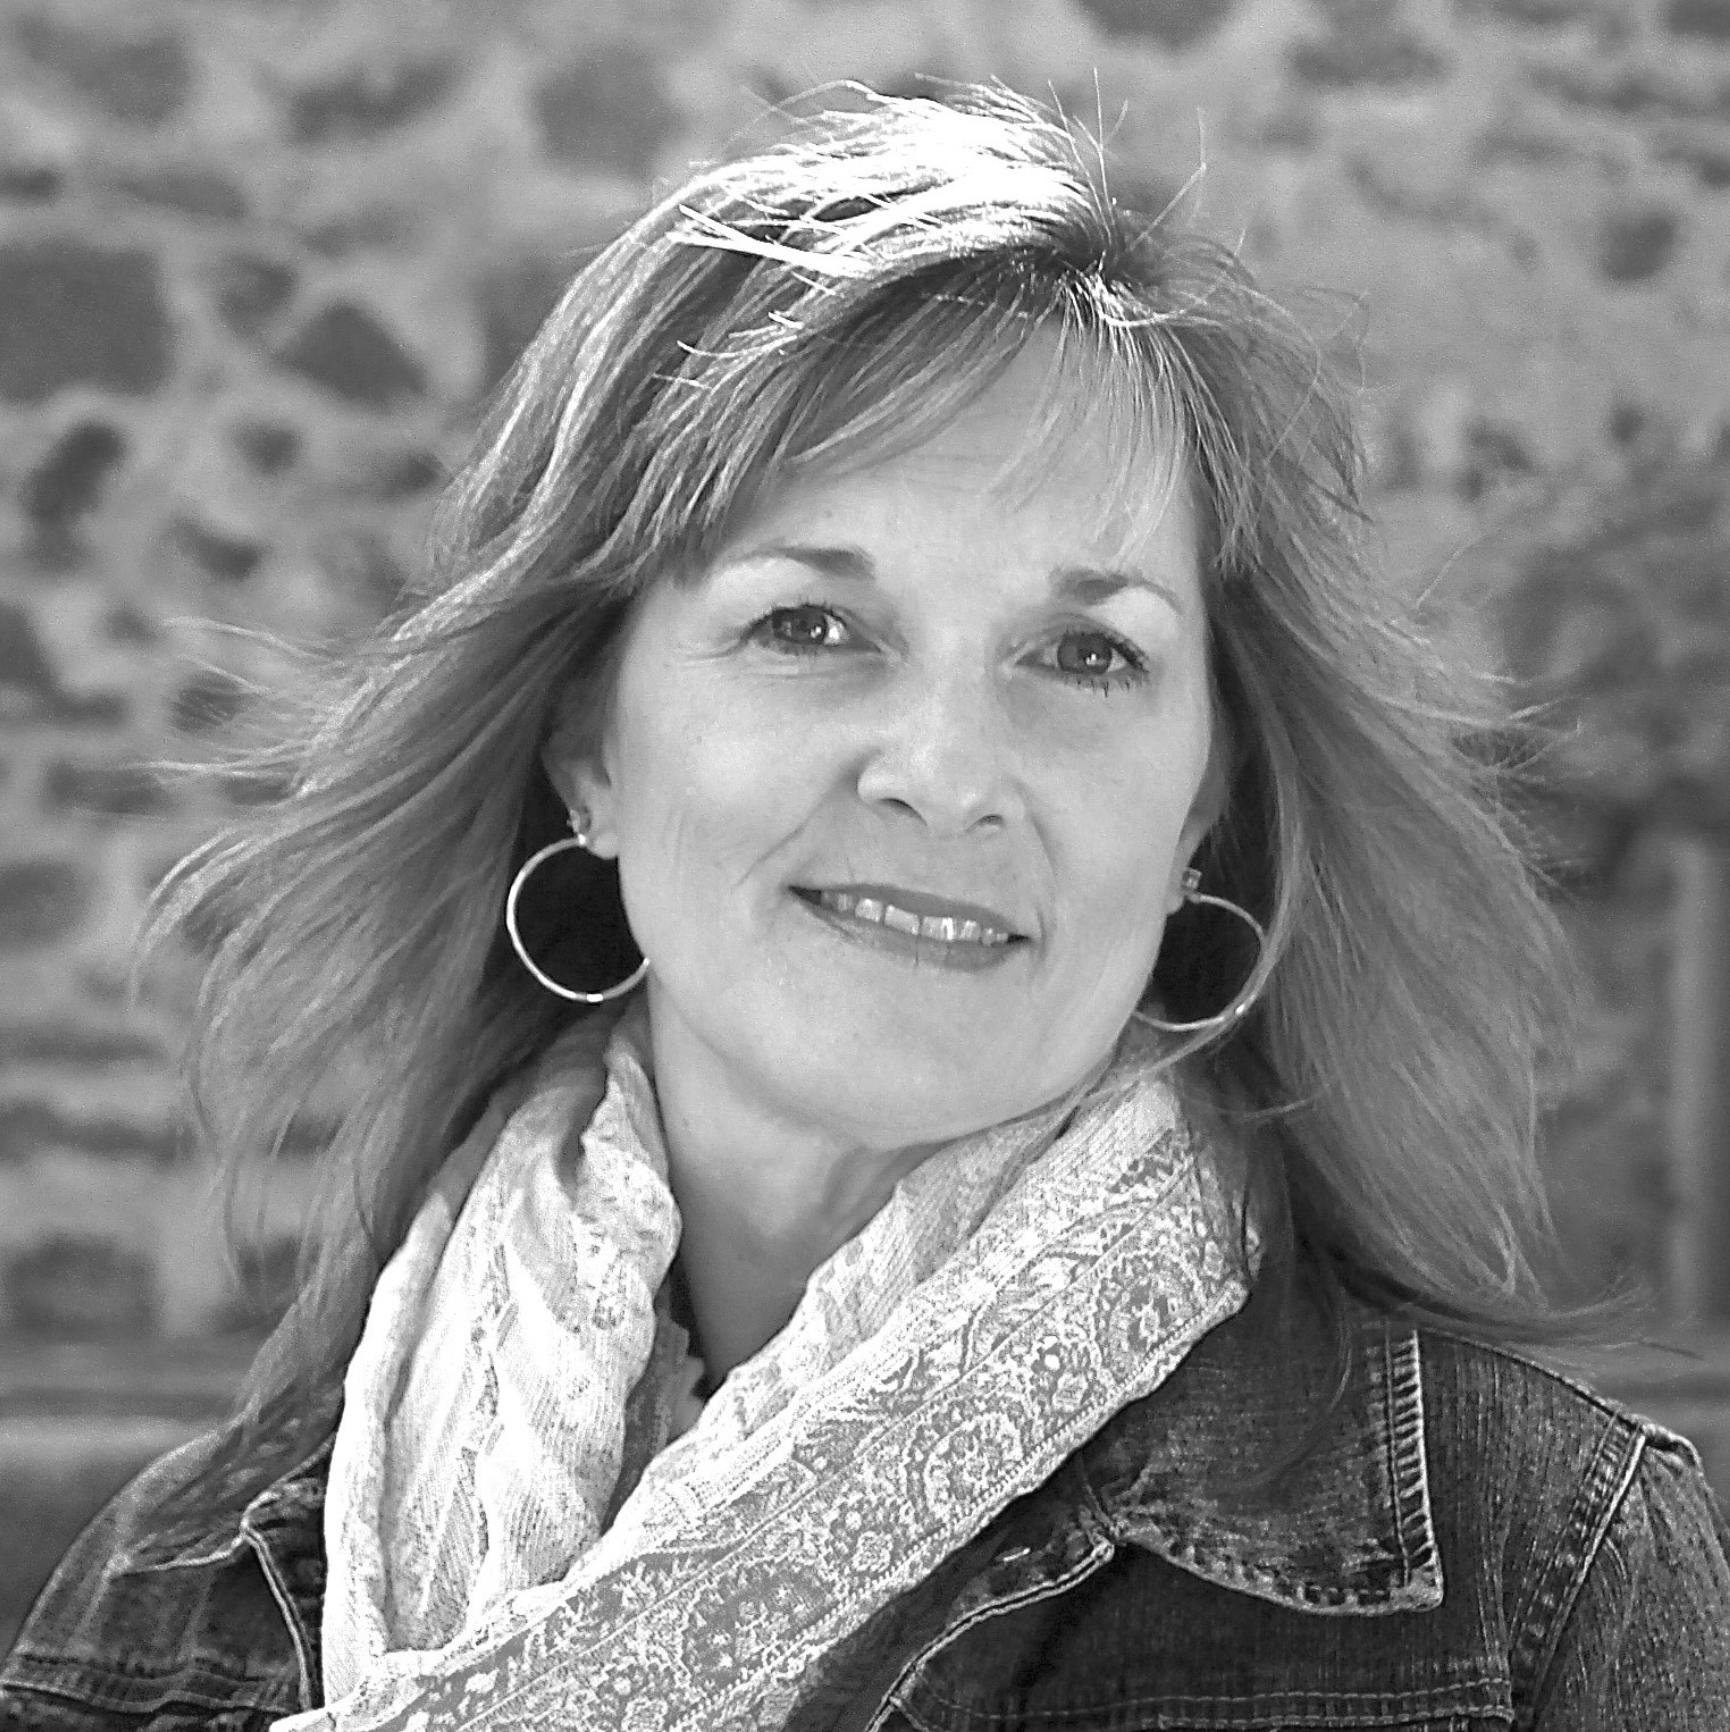 Mary Bonner   Mary Bonner serves as the administrative assistant for  Refine {the retreat} . She has been married to her best friend John for 30+ years. Mary's life is a joyful one, punctuated with deep loss and heartbreak--the  loss of a child  and a parent, and debilitating illness. But through it all, one thing remains constant: The Lord's comfort, peace and strength.  God used the tragedies of life that threatened to bankrupt her family to deepen her faith and change her for the better. She loves to cook, entertain and share a glass of wine with friends and believes a stranger is just a friend she hasn't met yet. You can find her on  Facebook ,  Twitter  and  Instagram  and writing at  www.marybonner.net .